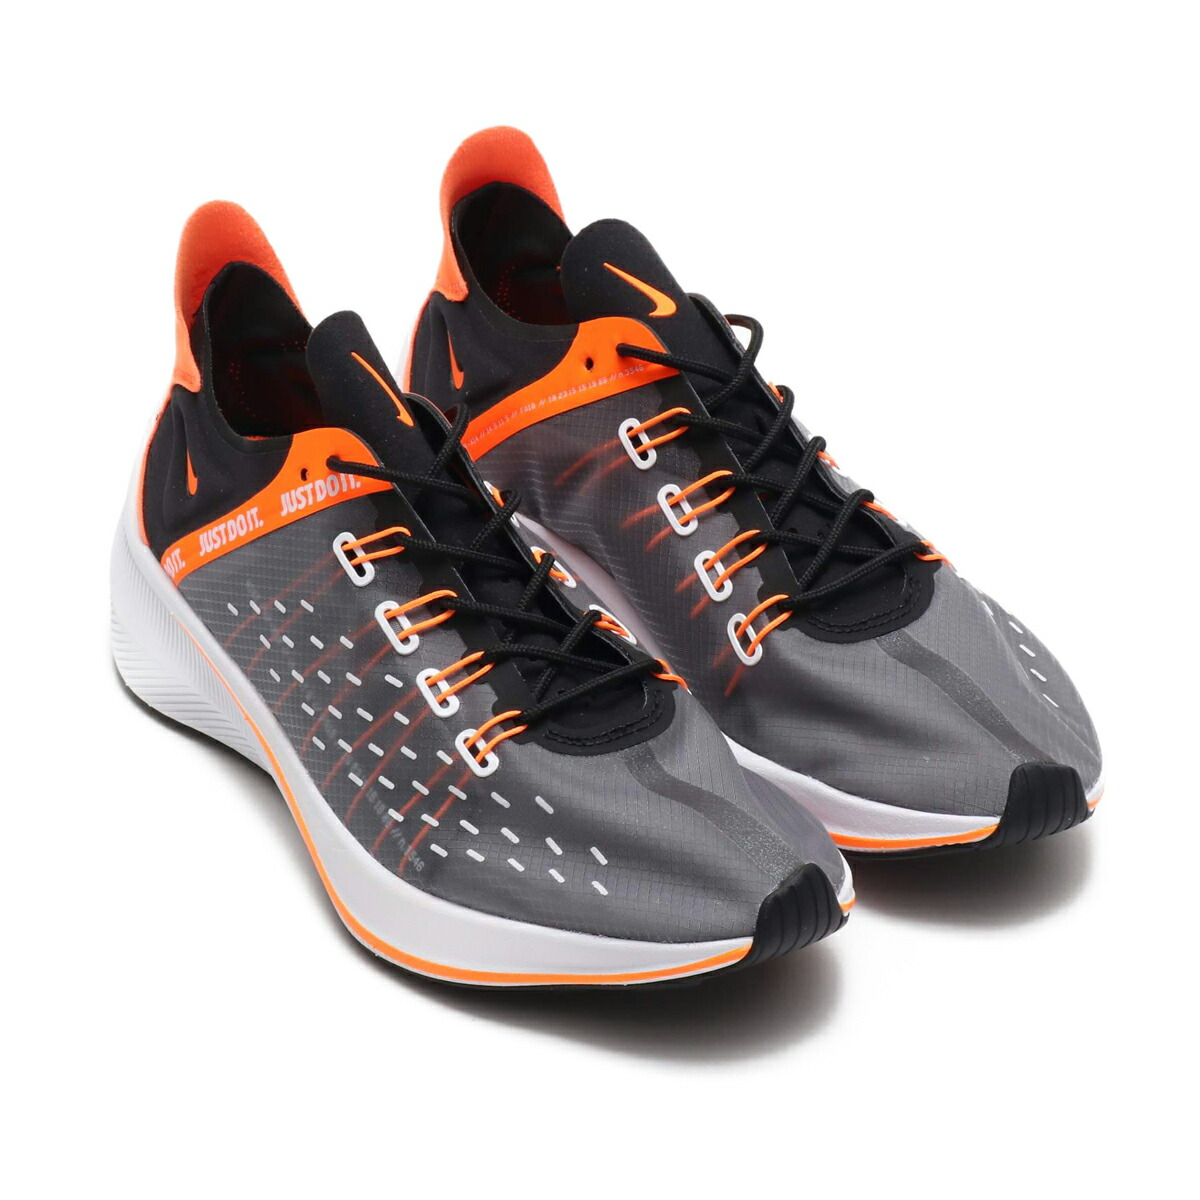 sneakers for cheap 4c793 e5191 Product Information